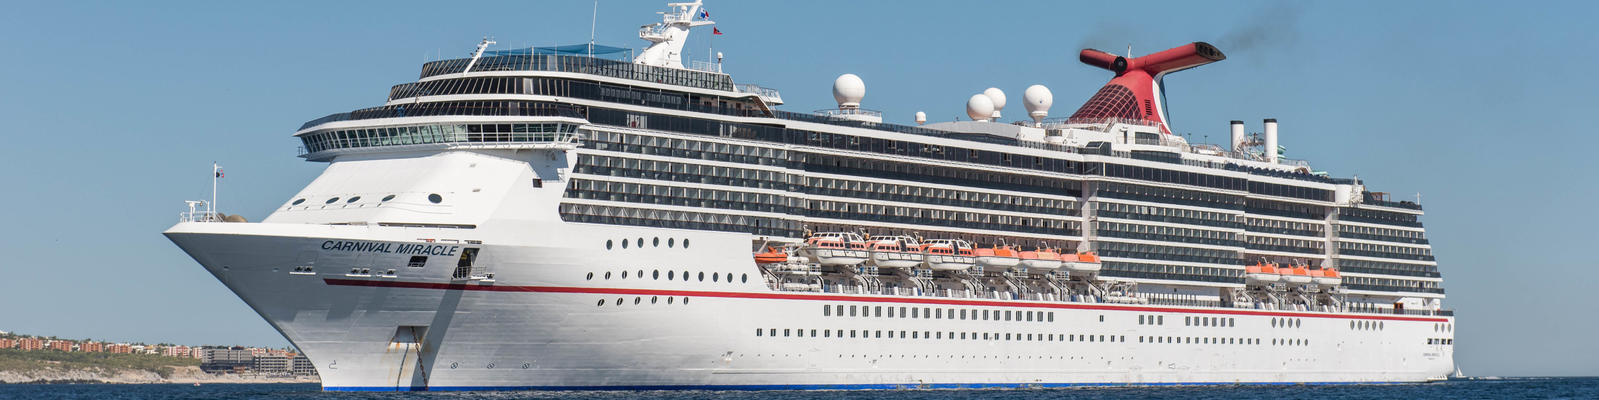 carnival miracle cruise ship review photos departure ports on